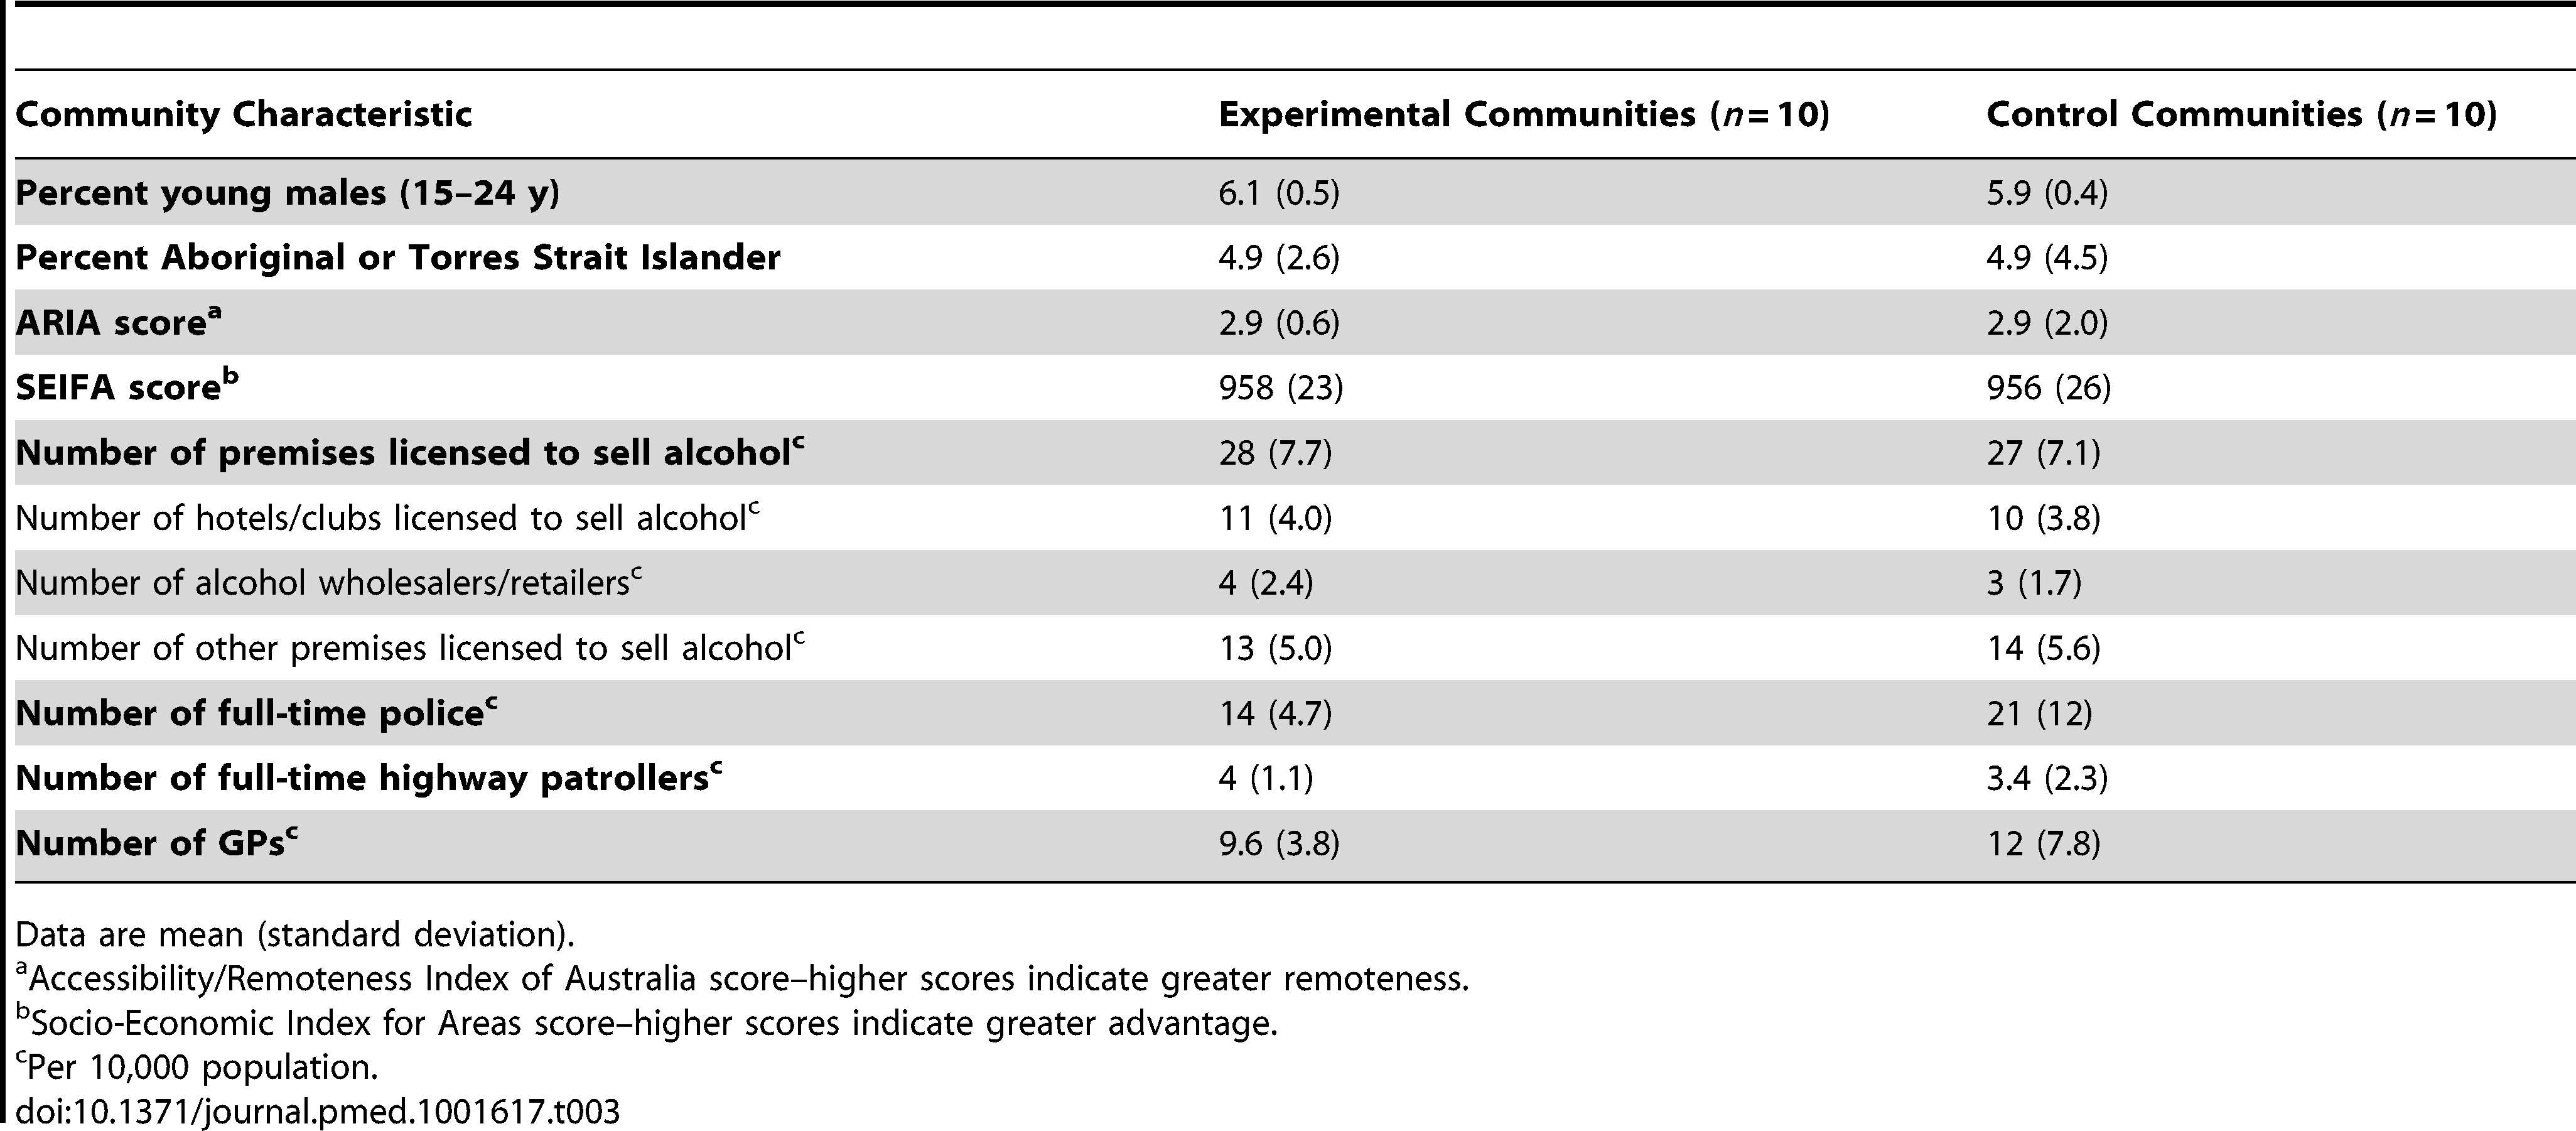 Community-level summary statistics pre-intervention, separately for experimental and control communities.